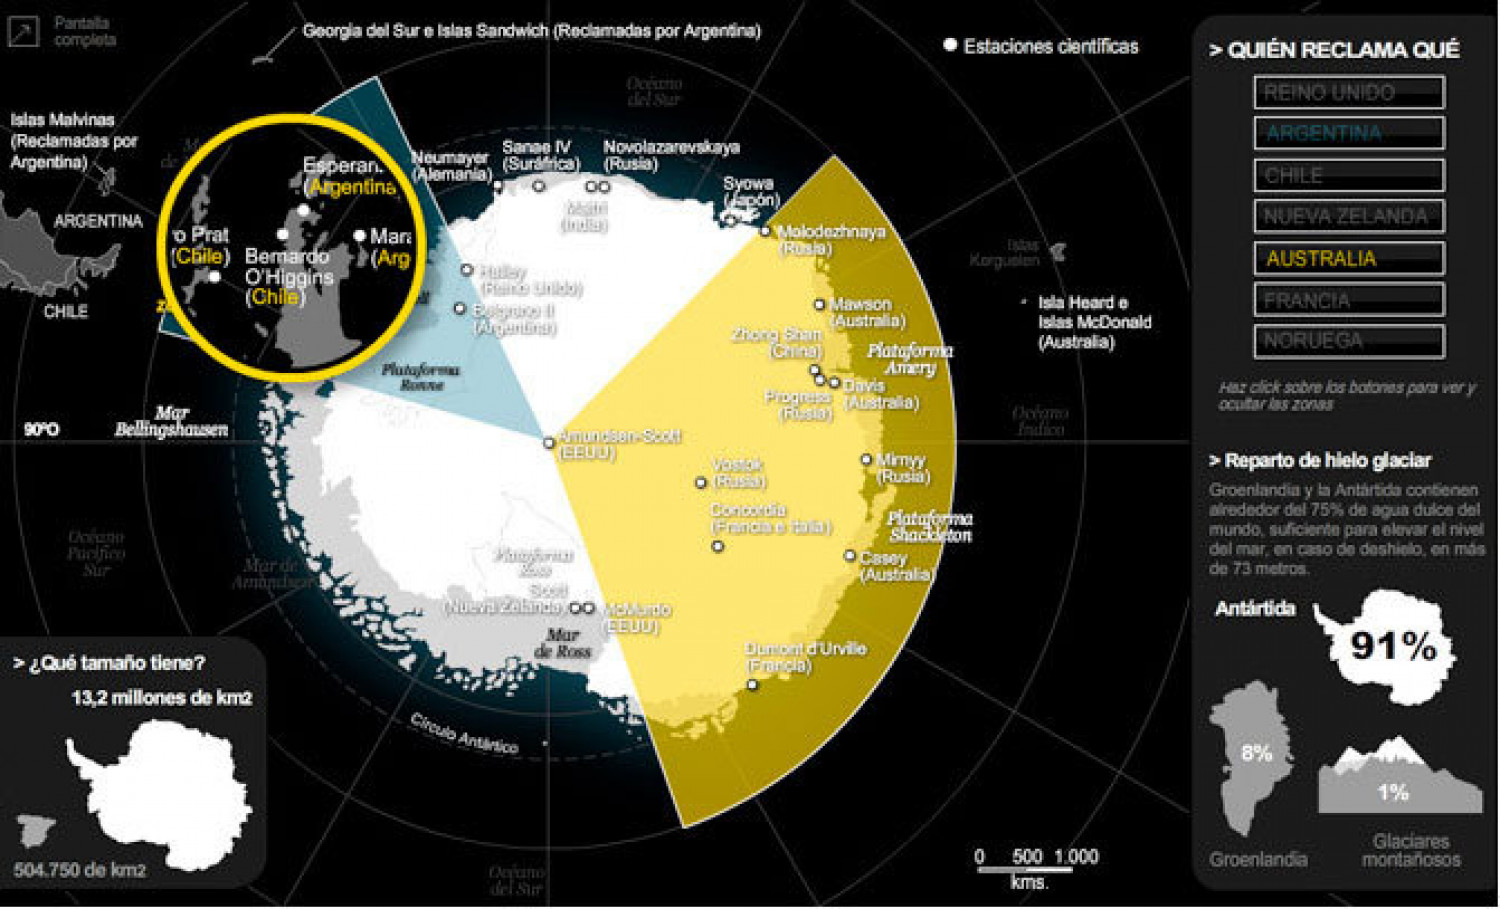 Antarctic: who's the owner Infographic